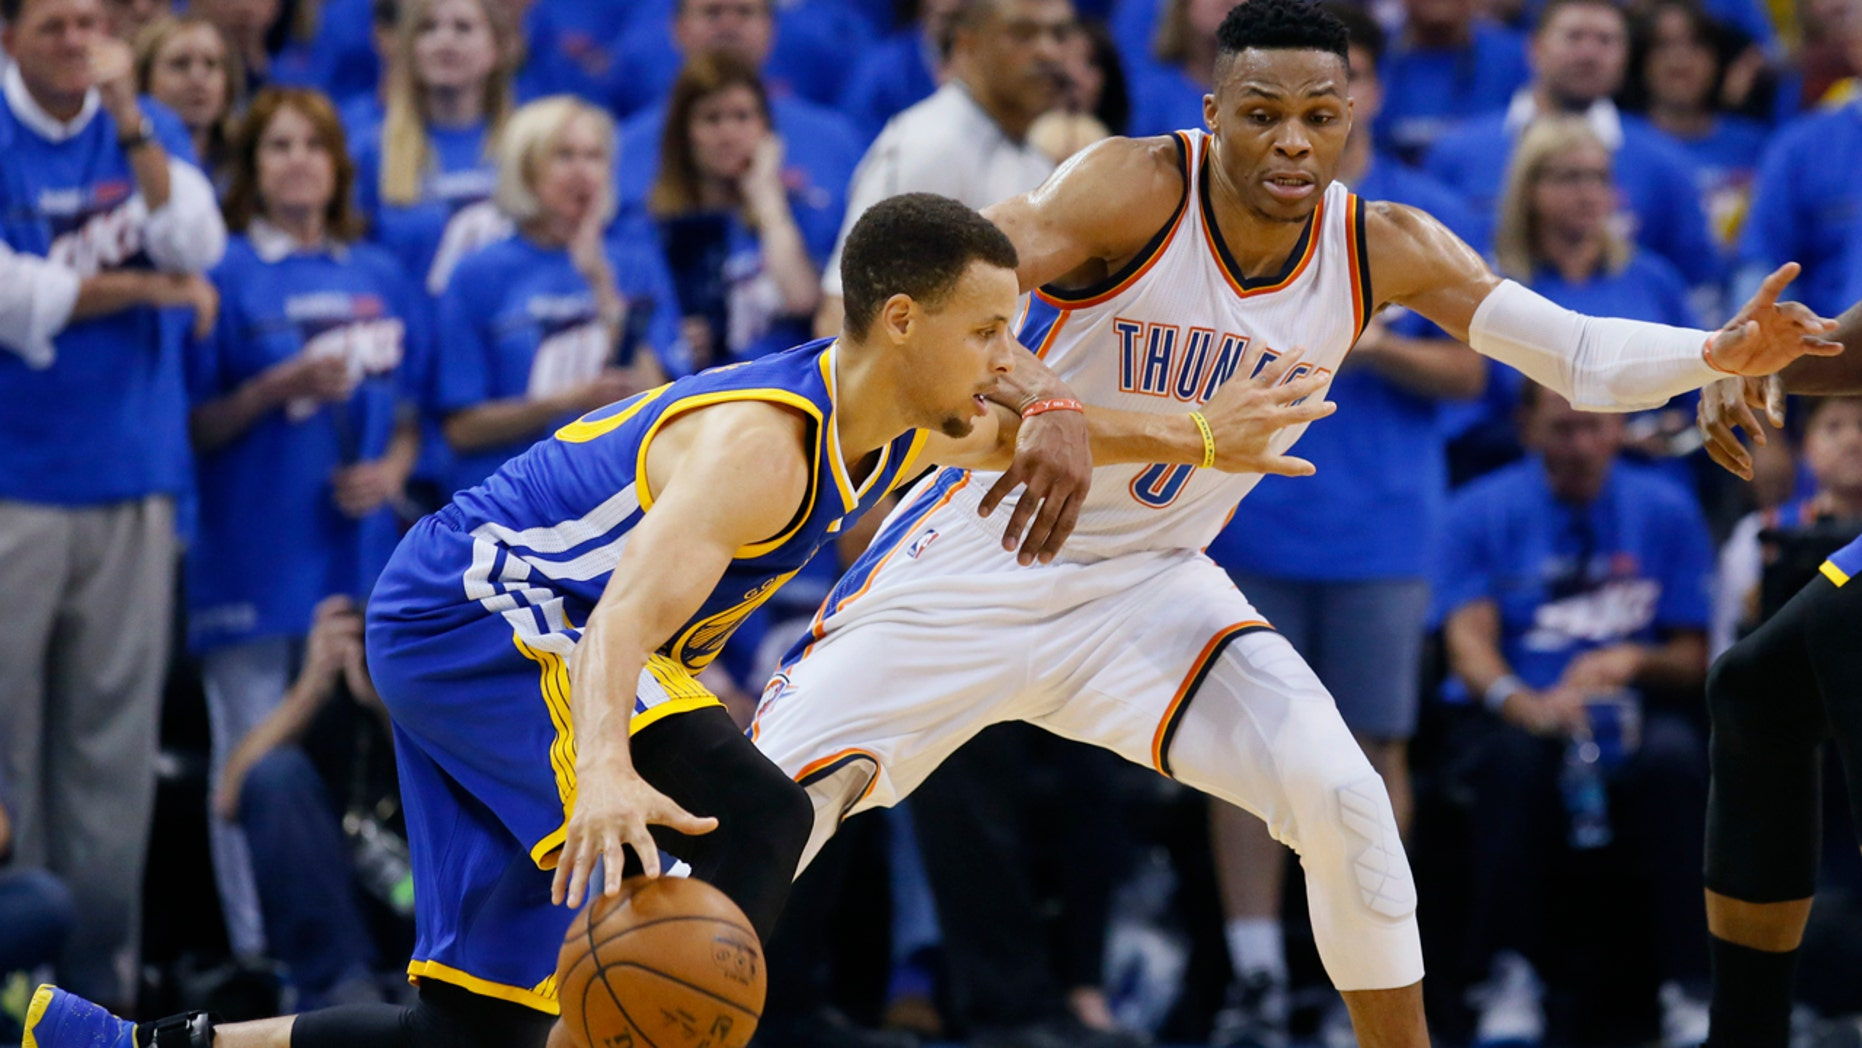 May 22, 2016: Golden State Warriors guard Stephen Curry (30) tries to drive around Oklahoma City Thunder guard Russell Westbrook (0) during the second half in Game 3 of the NBA Western Conference finals in Oklahoma City